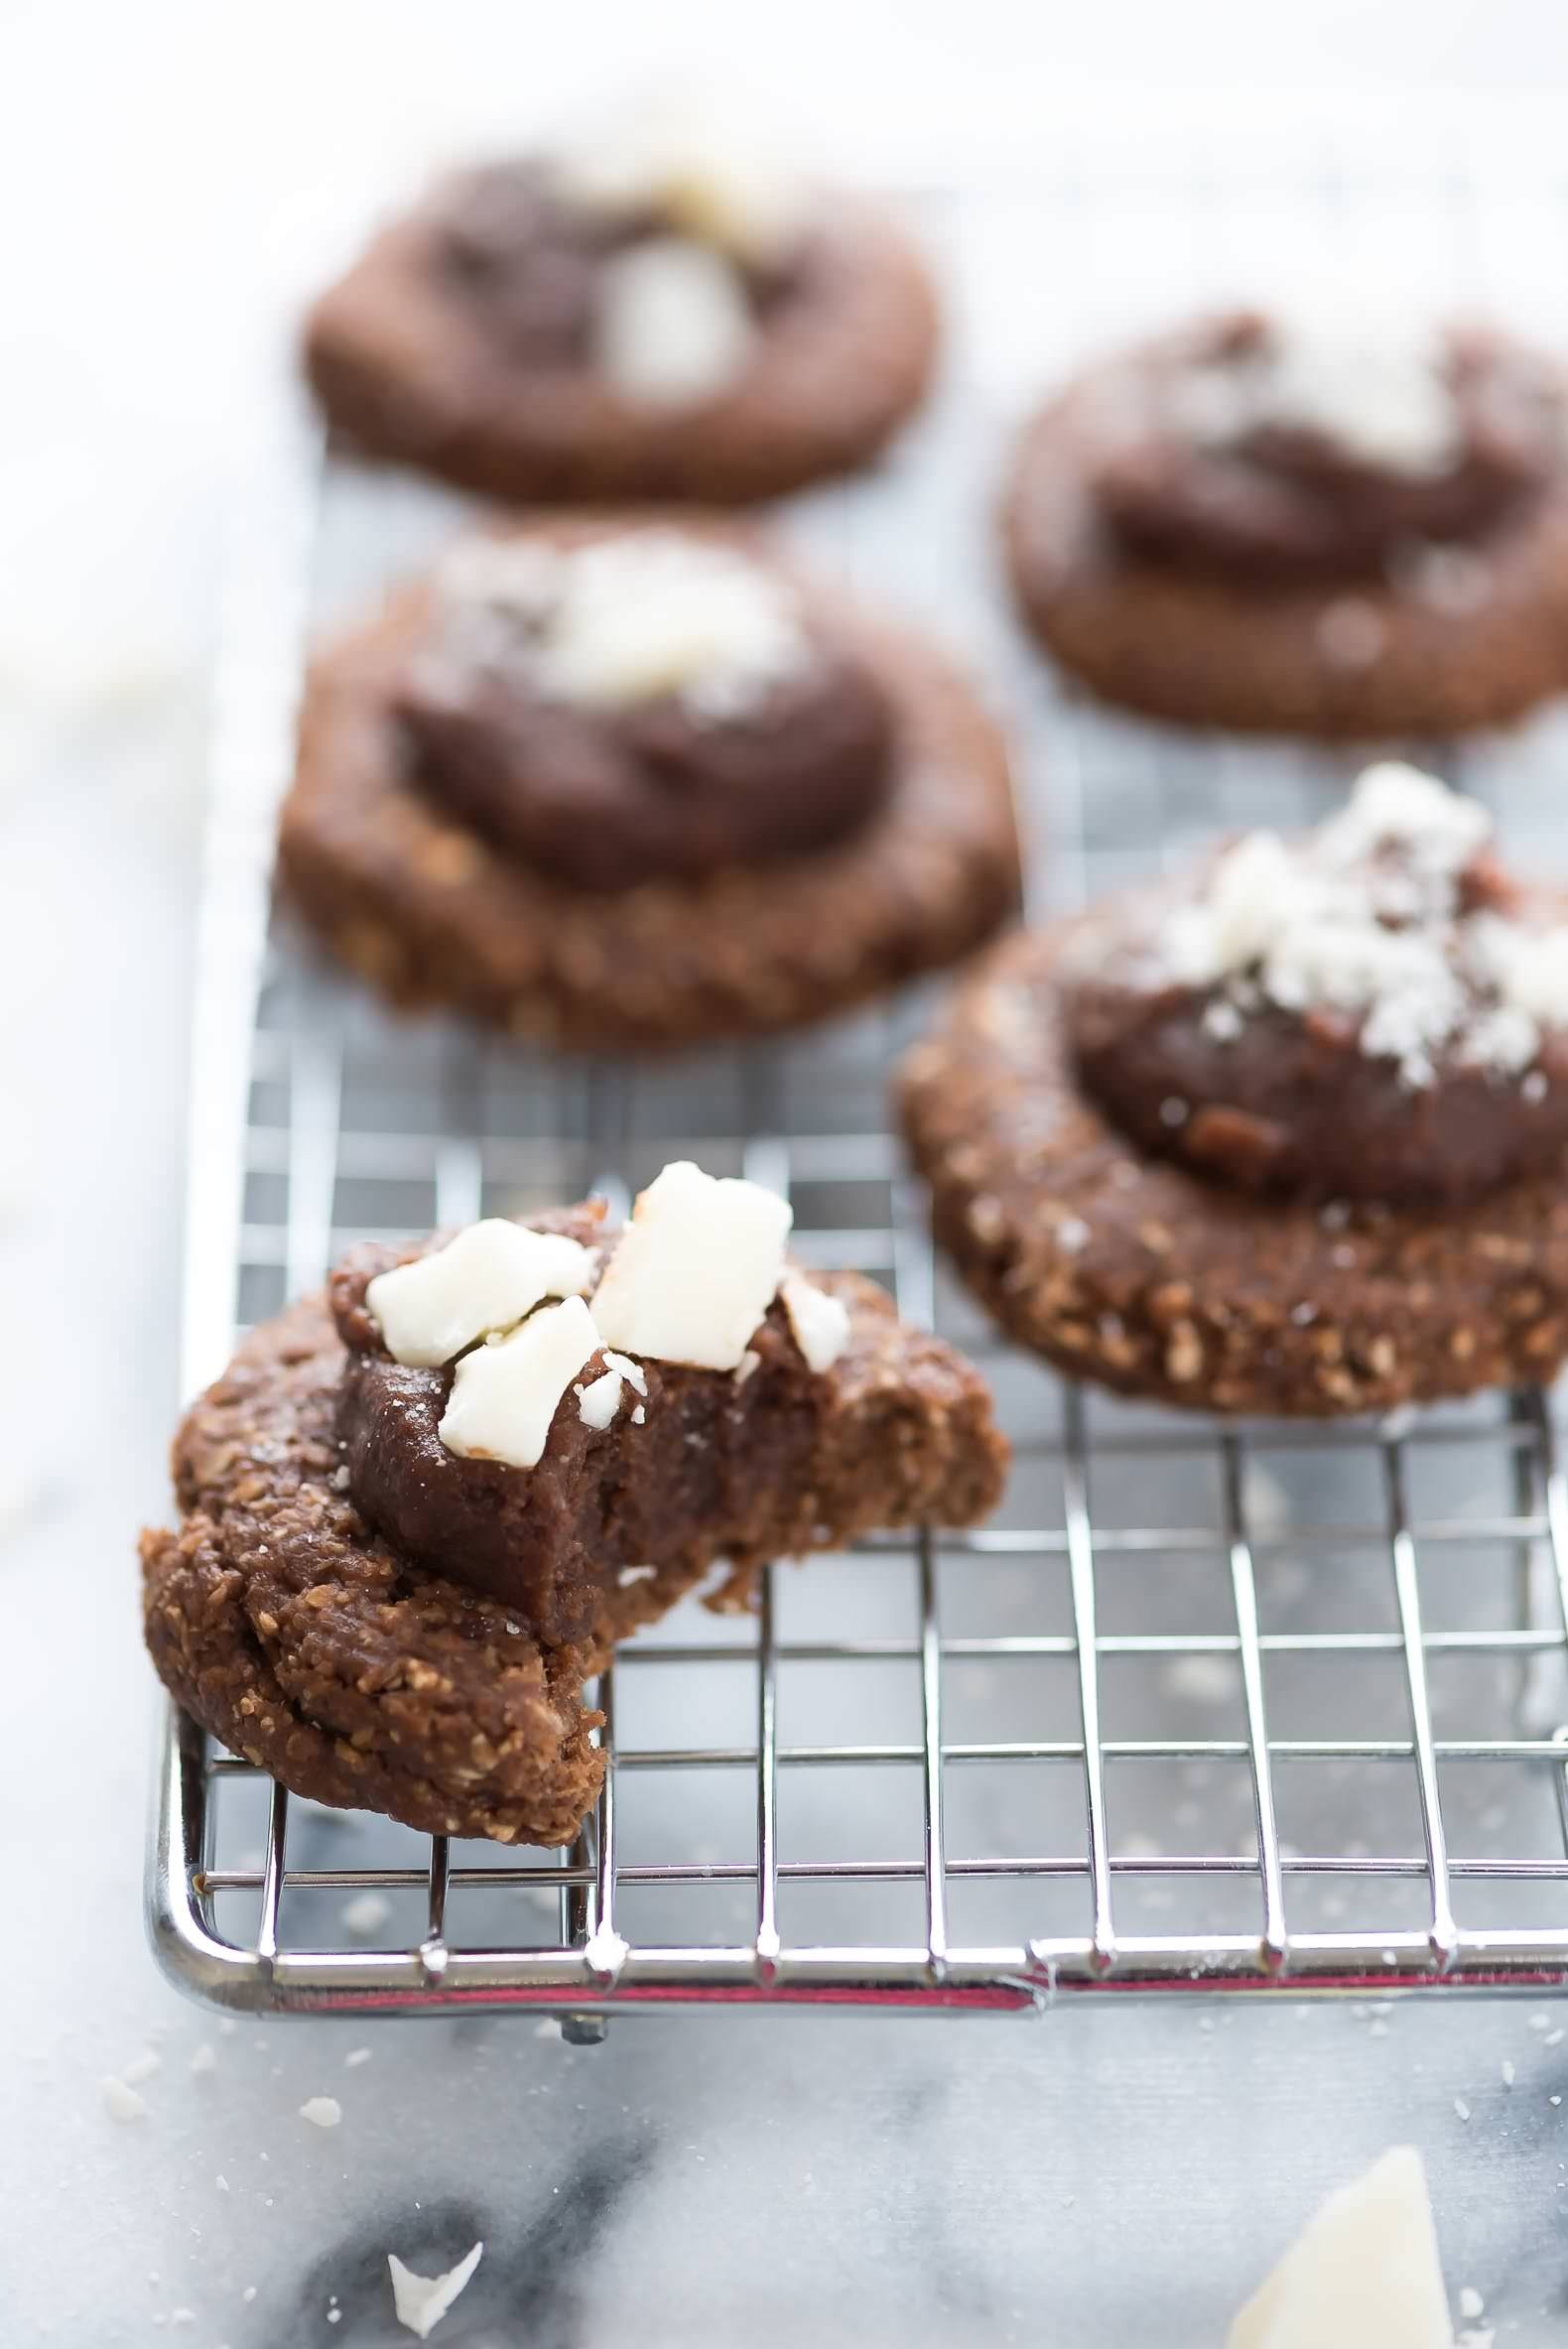 no bake chocolate oatmeal cookies, without peanut butter, healthy, recipe, low carb, easy, best, with cocoa, sugar free, vegan, without milk, old fashioned oats, maple syrup, simple, clean eating